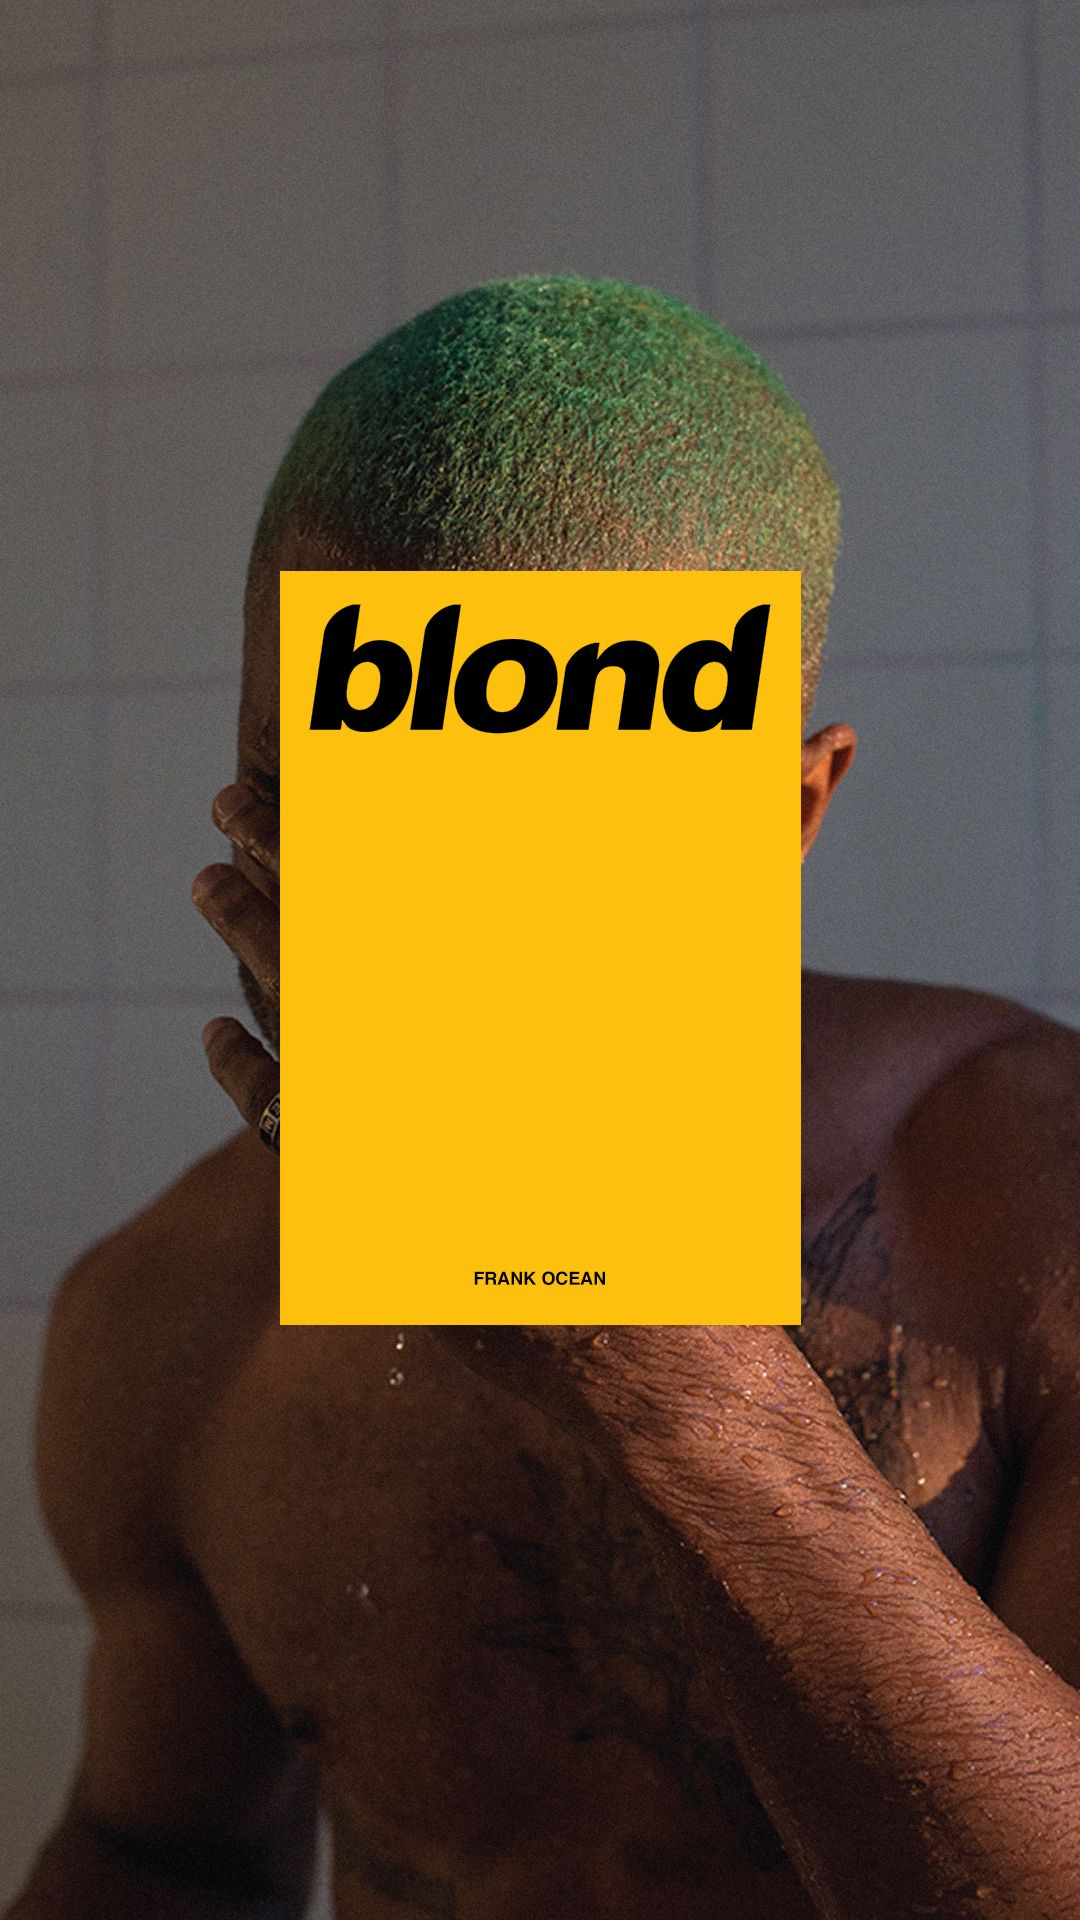 Frank Ocean - Blond Poster 1  Frank  Art Graphique -8736